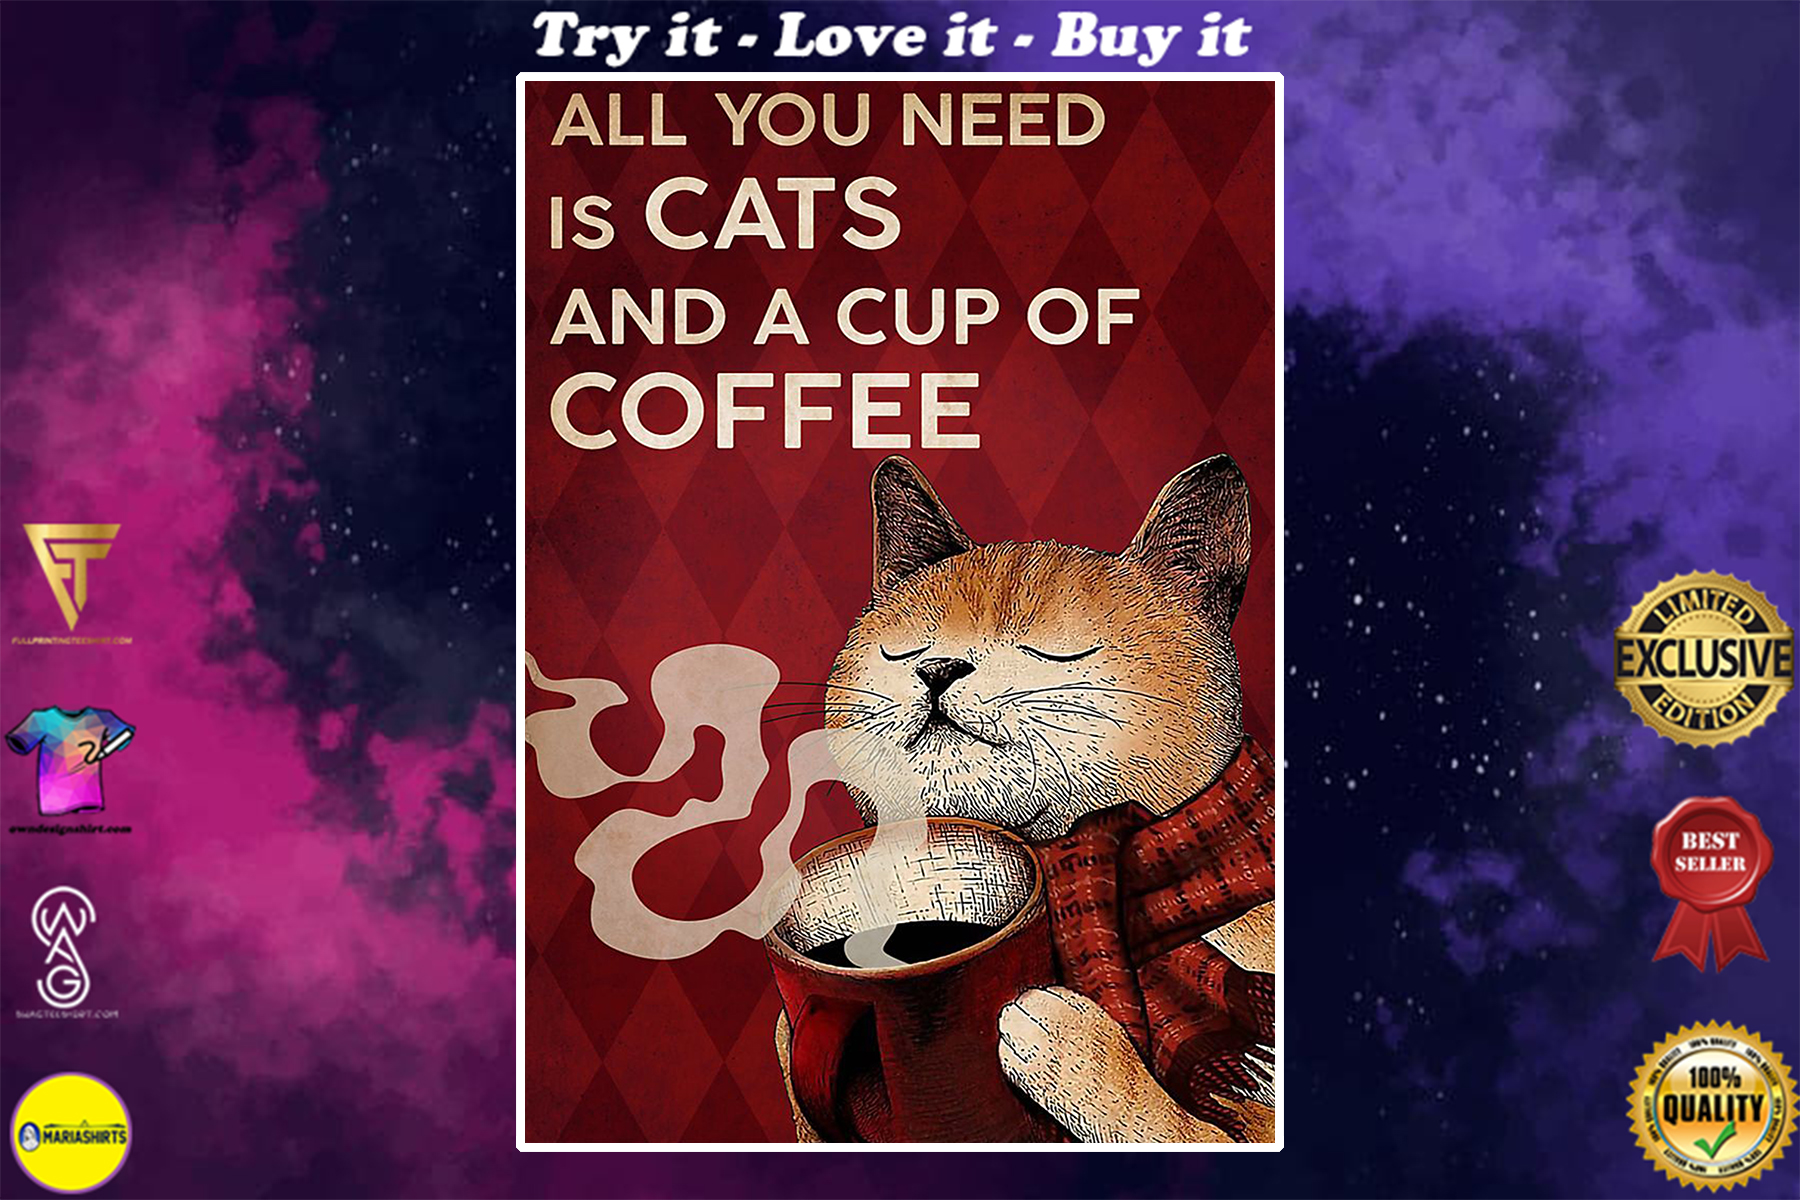 vintage all you need is cats and a cup of coffee poster